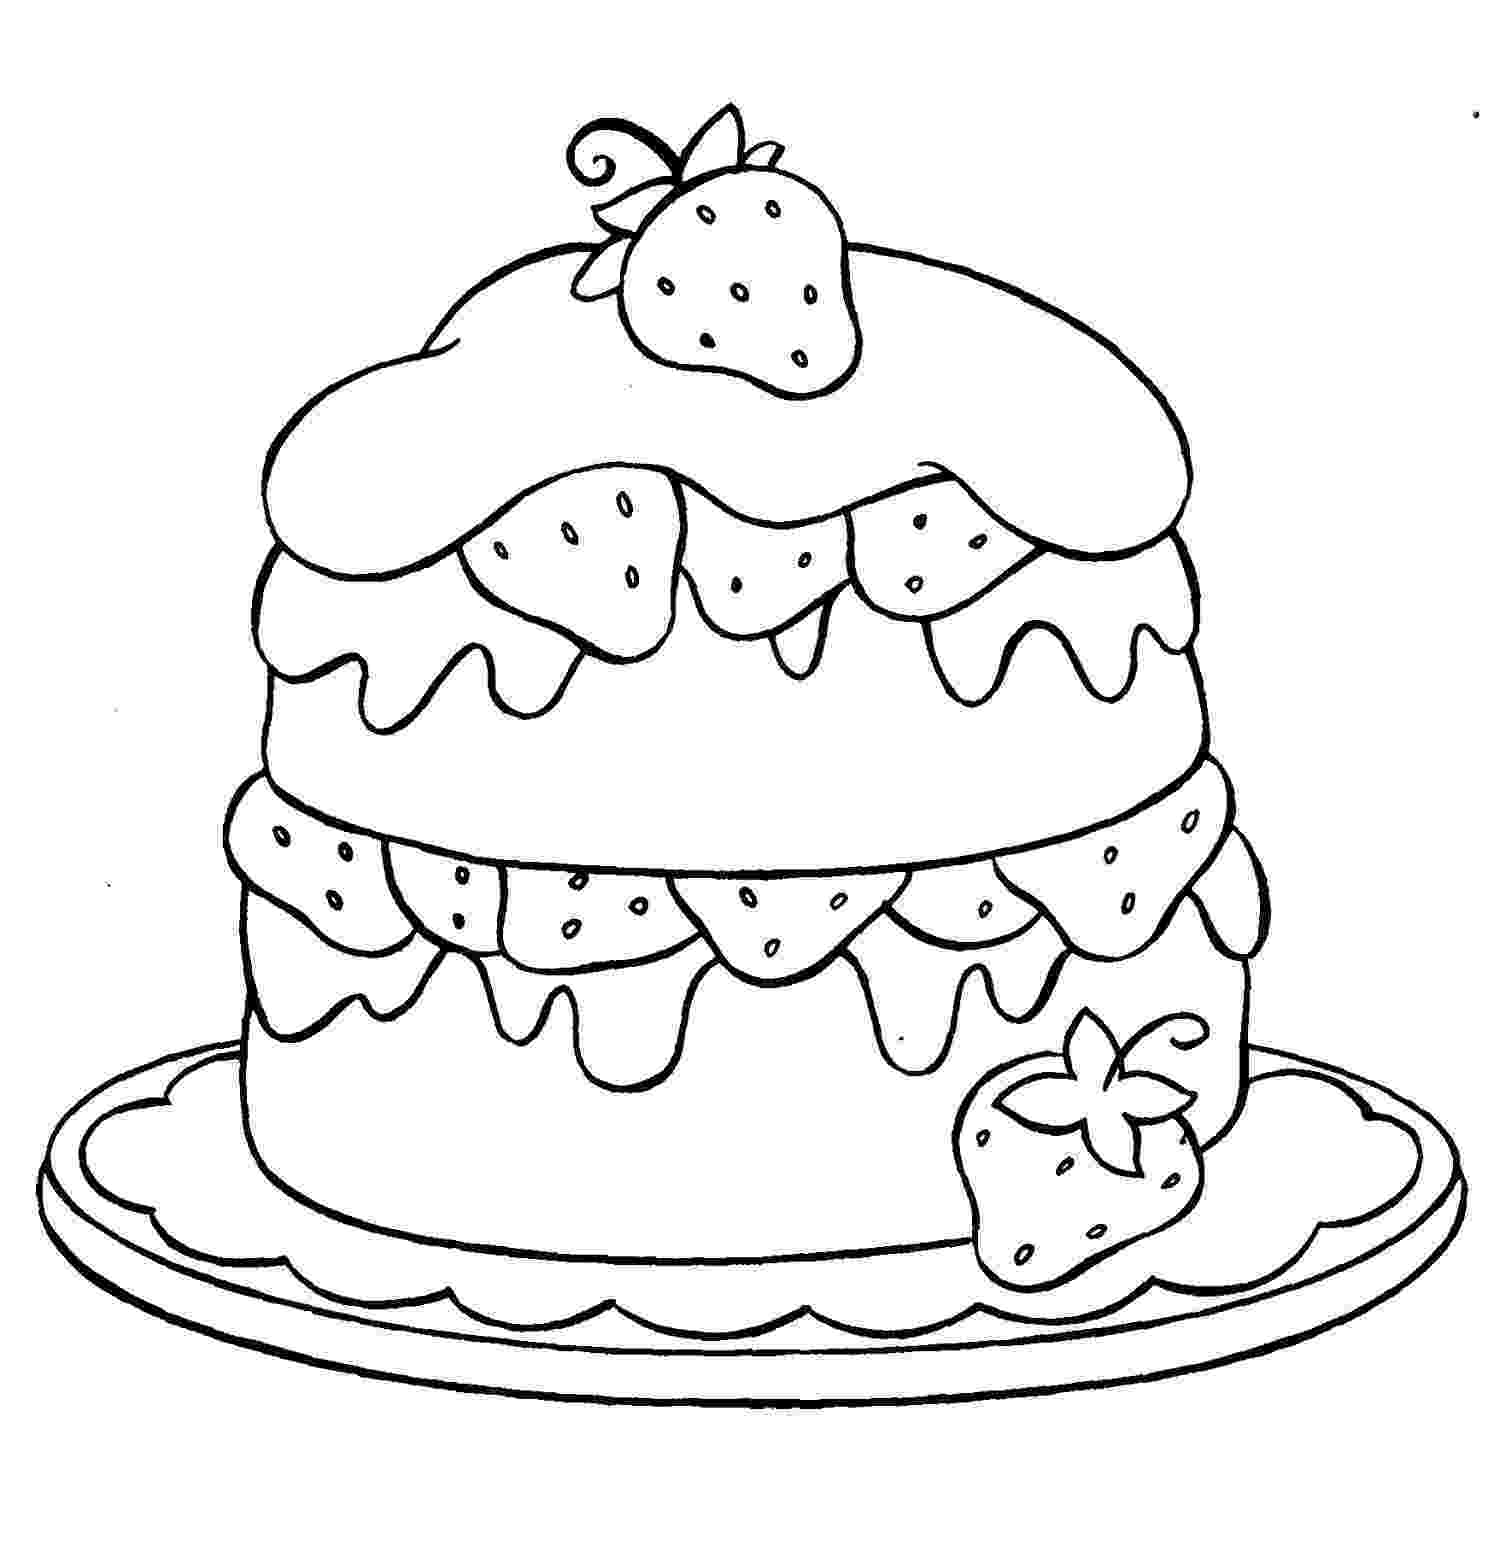 strawberry colouring page strawberry coloring pages best coloring pages for kids colouring strawberry page 1 1